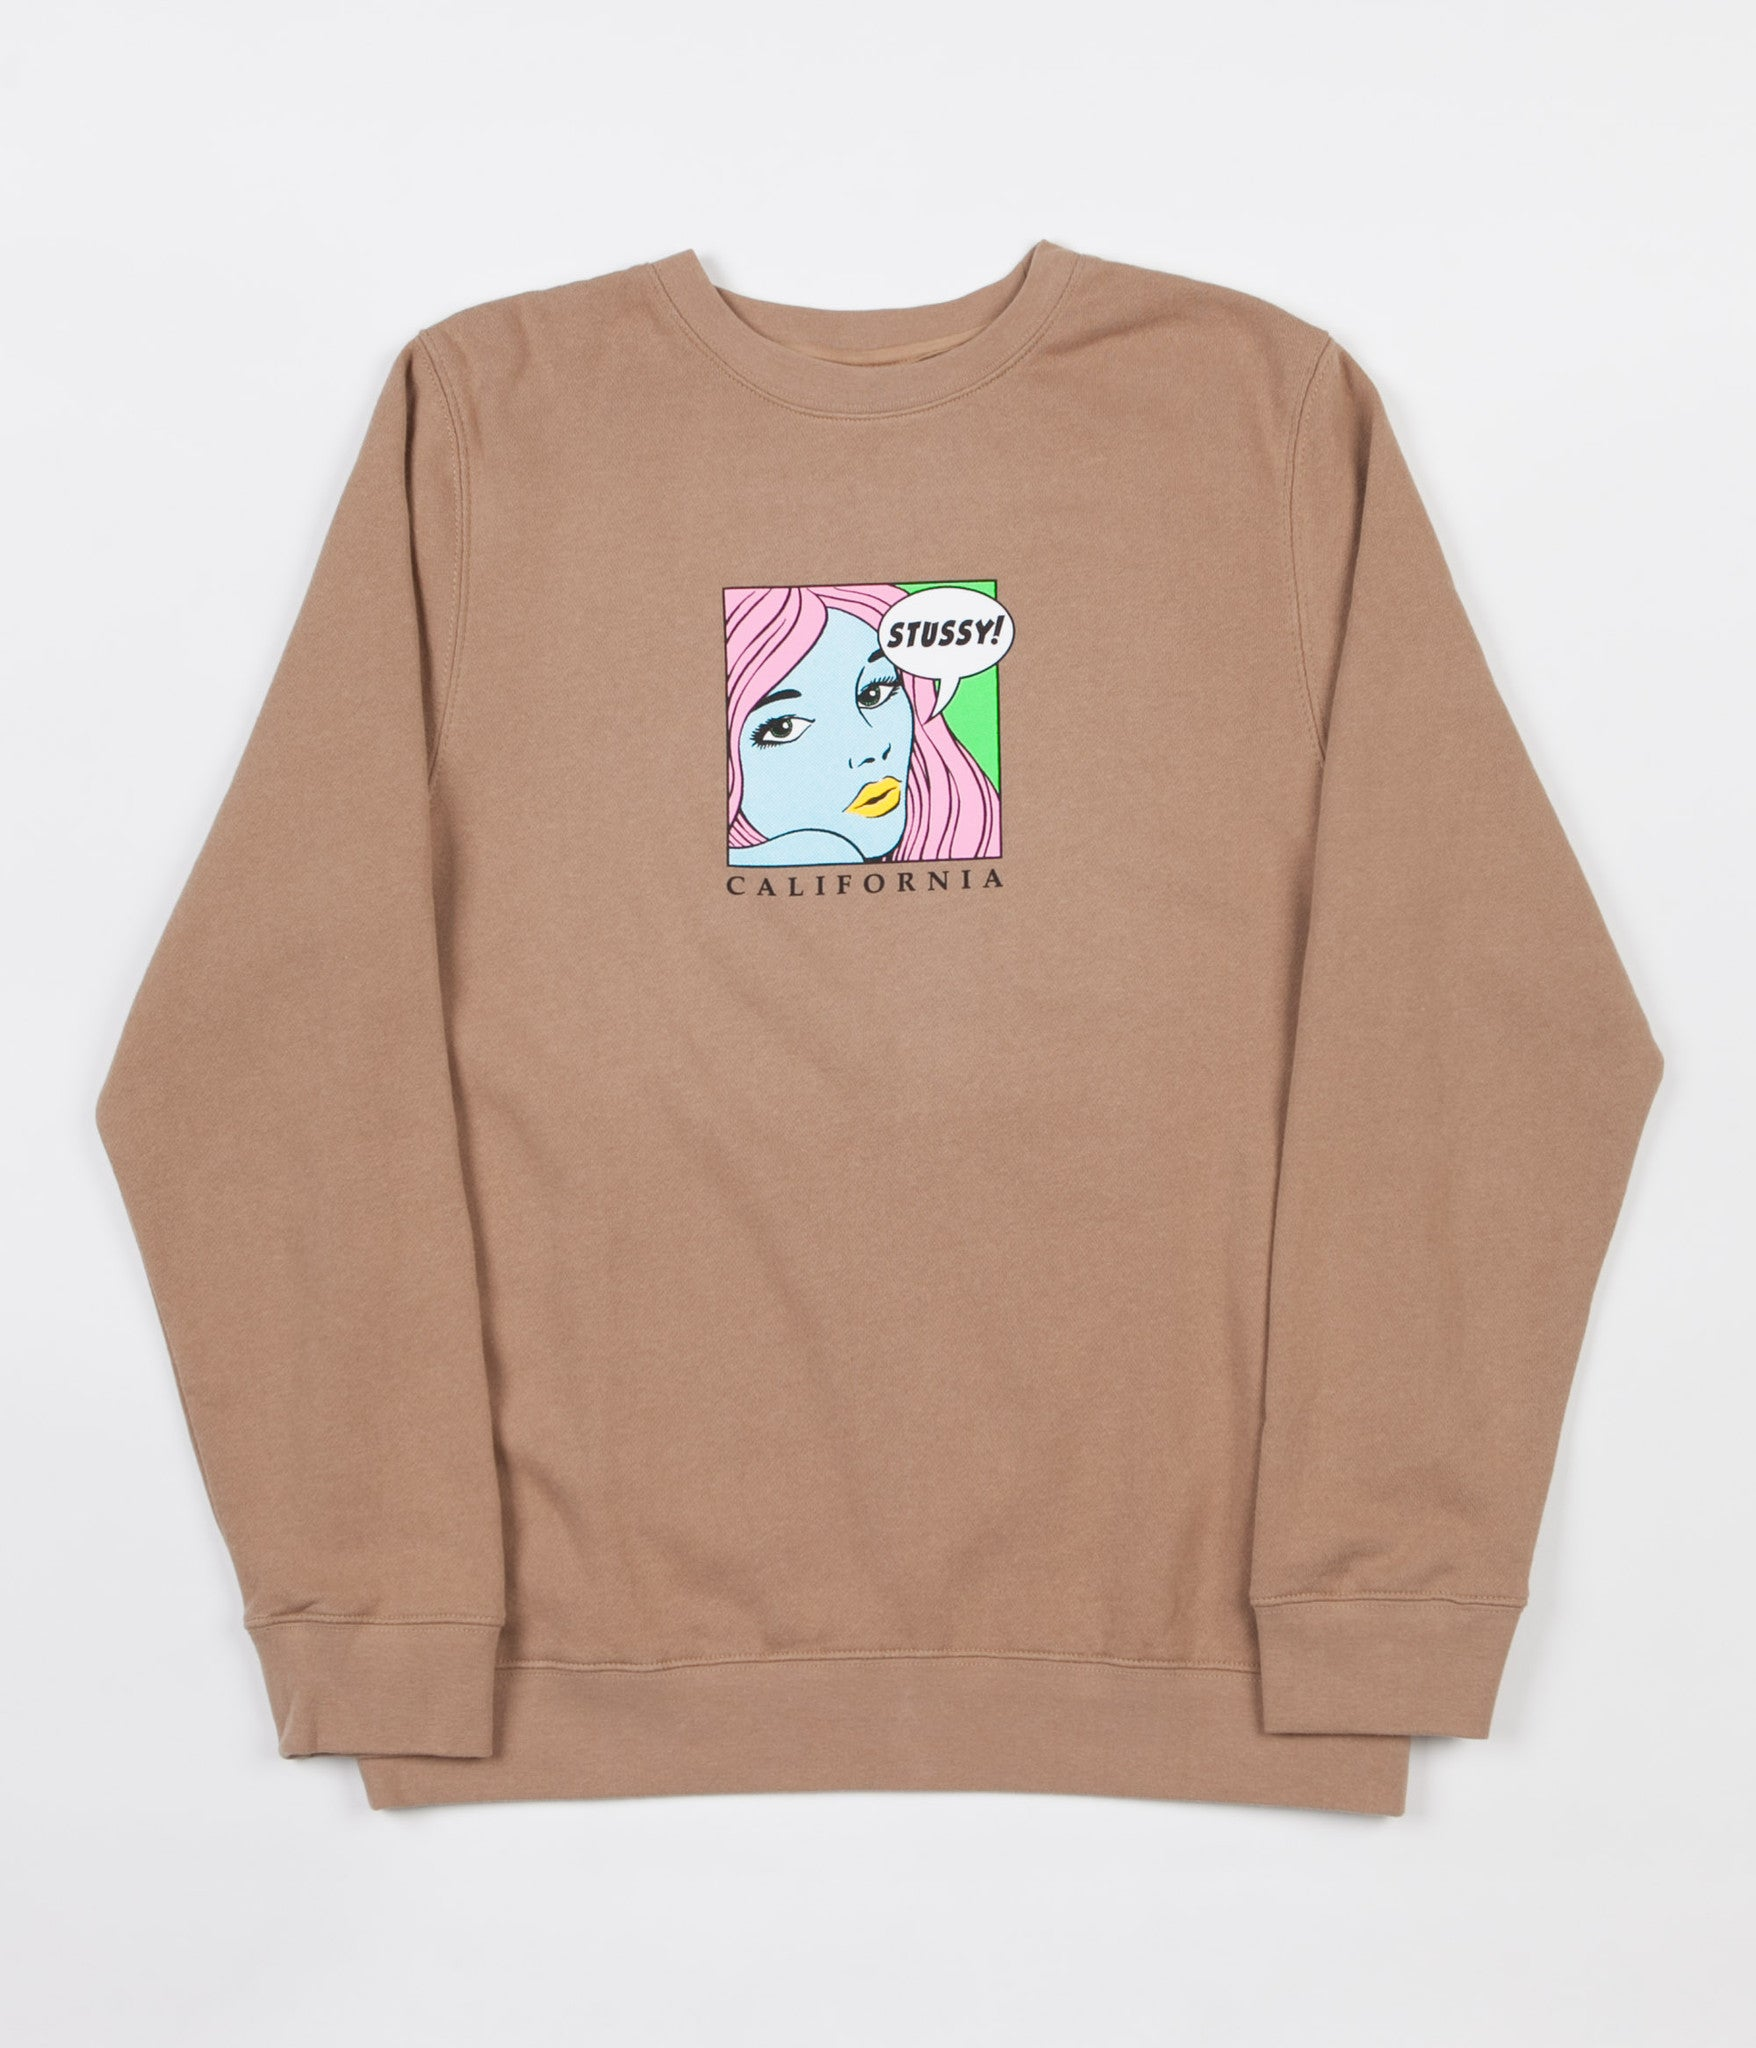 Stussy Cali Girl Crewneck Sweatshirt - Light Brown